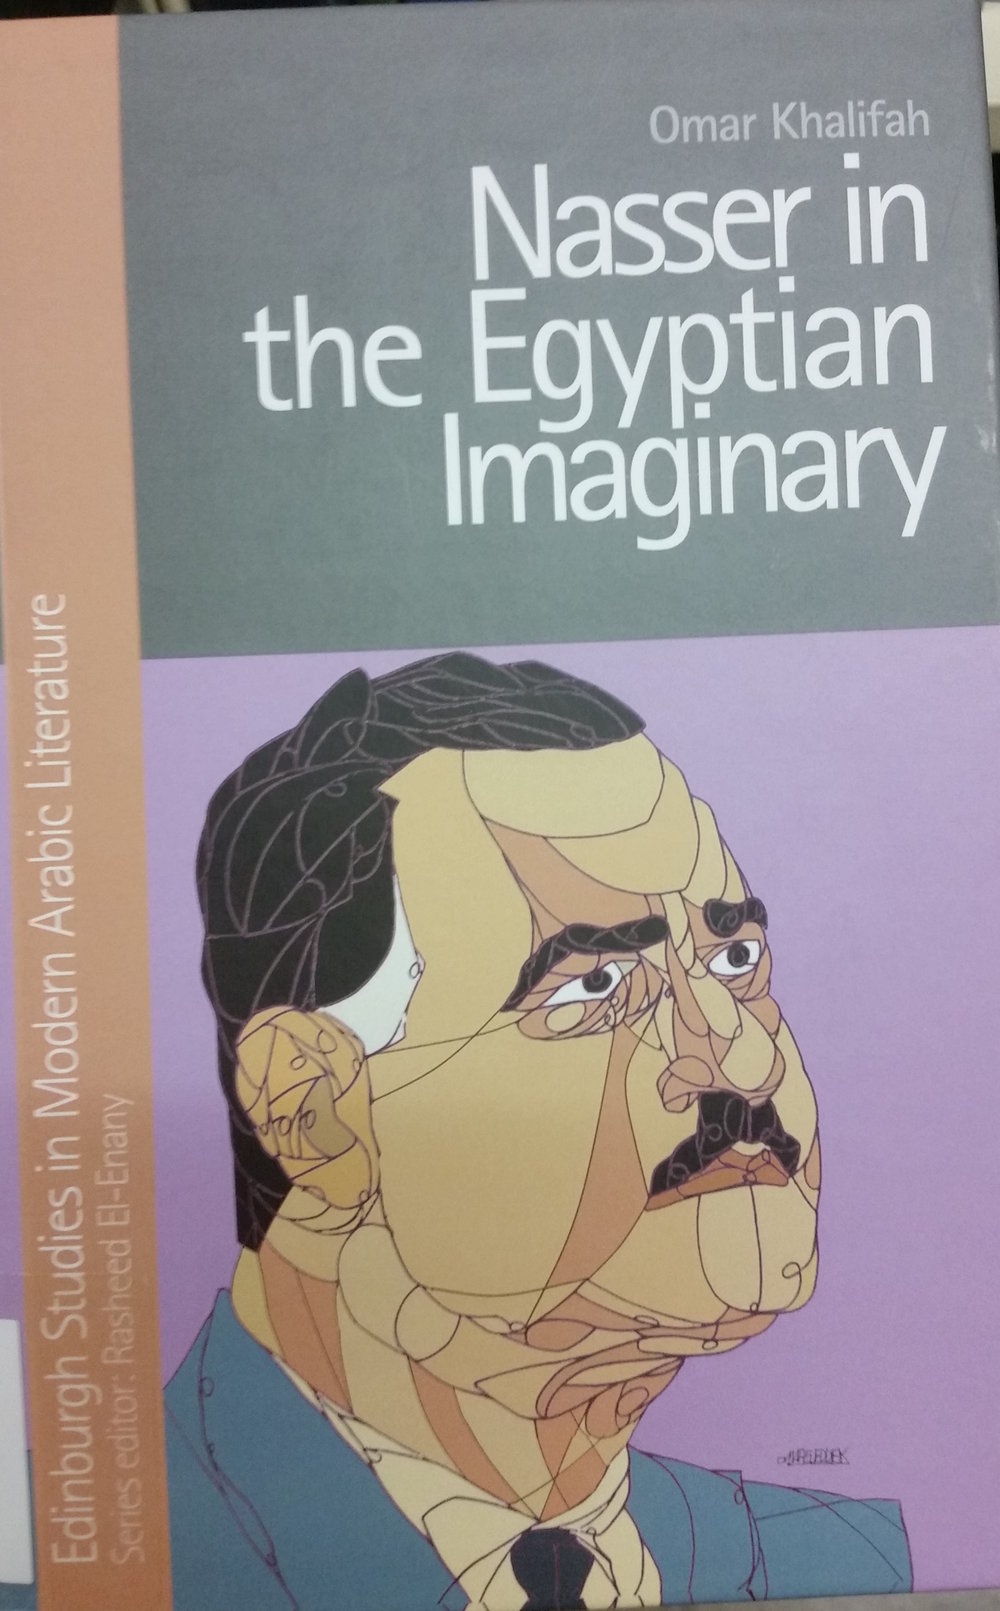 Omar Khalifah, Edinburgh : Edinburgh University Press, 2017.